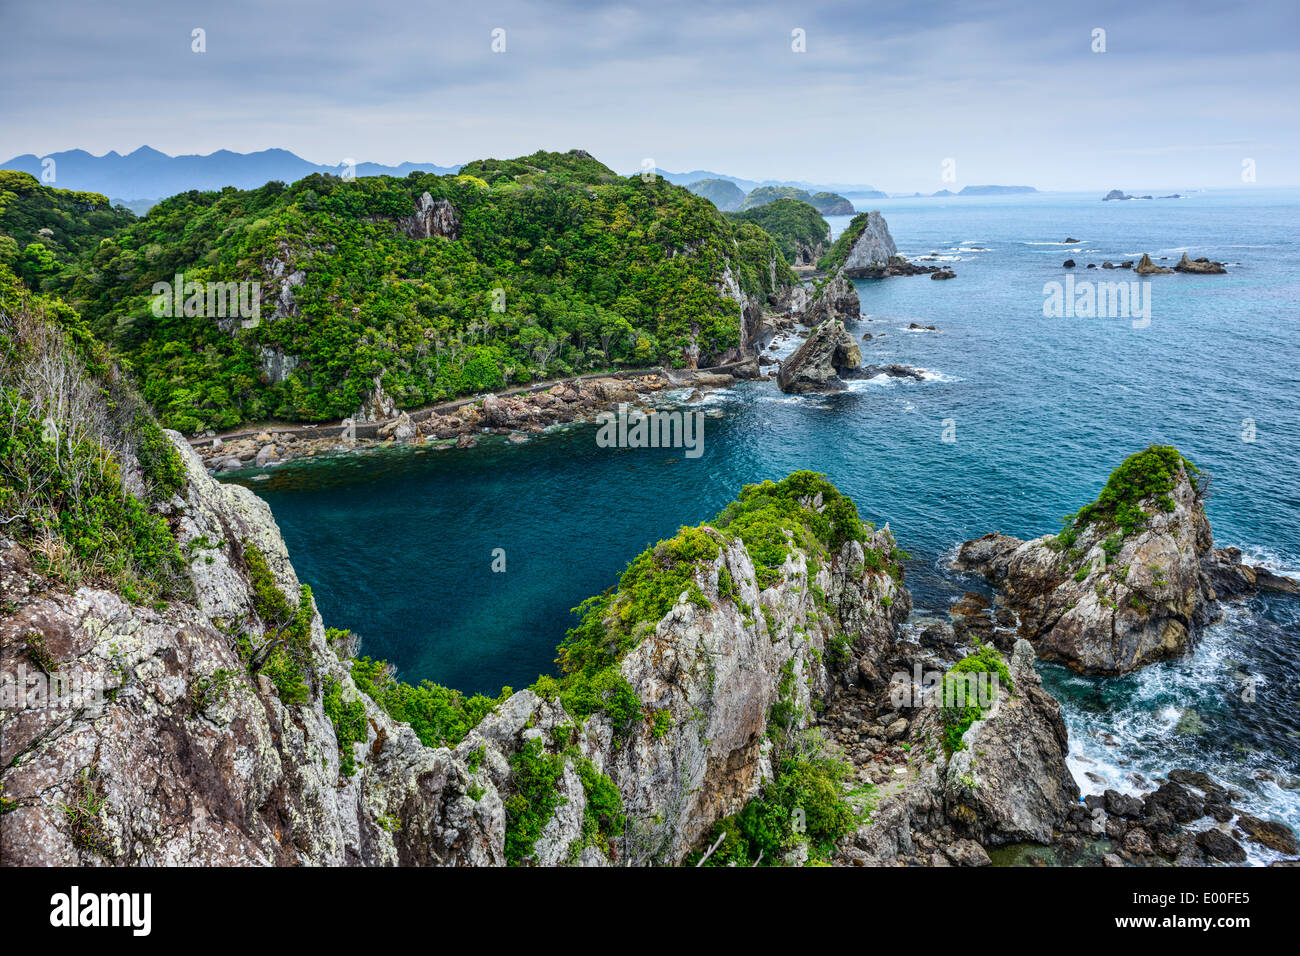 The Cove at Taiji, Wakayama, Japan. The site is known as the infamous location of the yearly dolphin drive hunt. - Stock Image